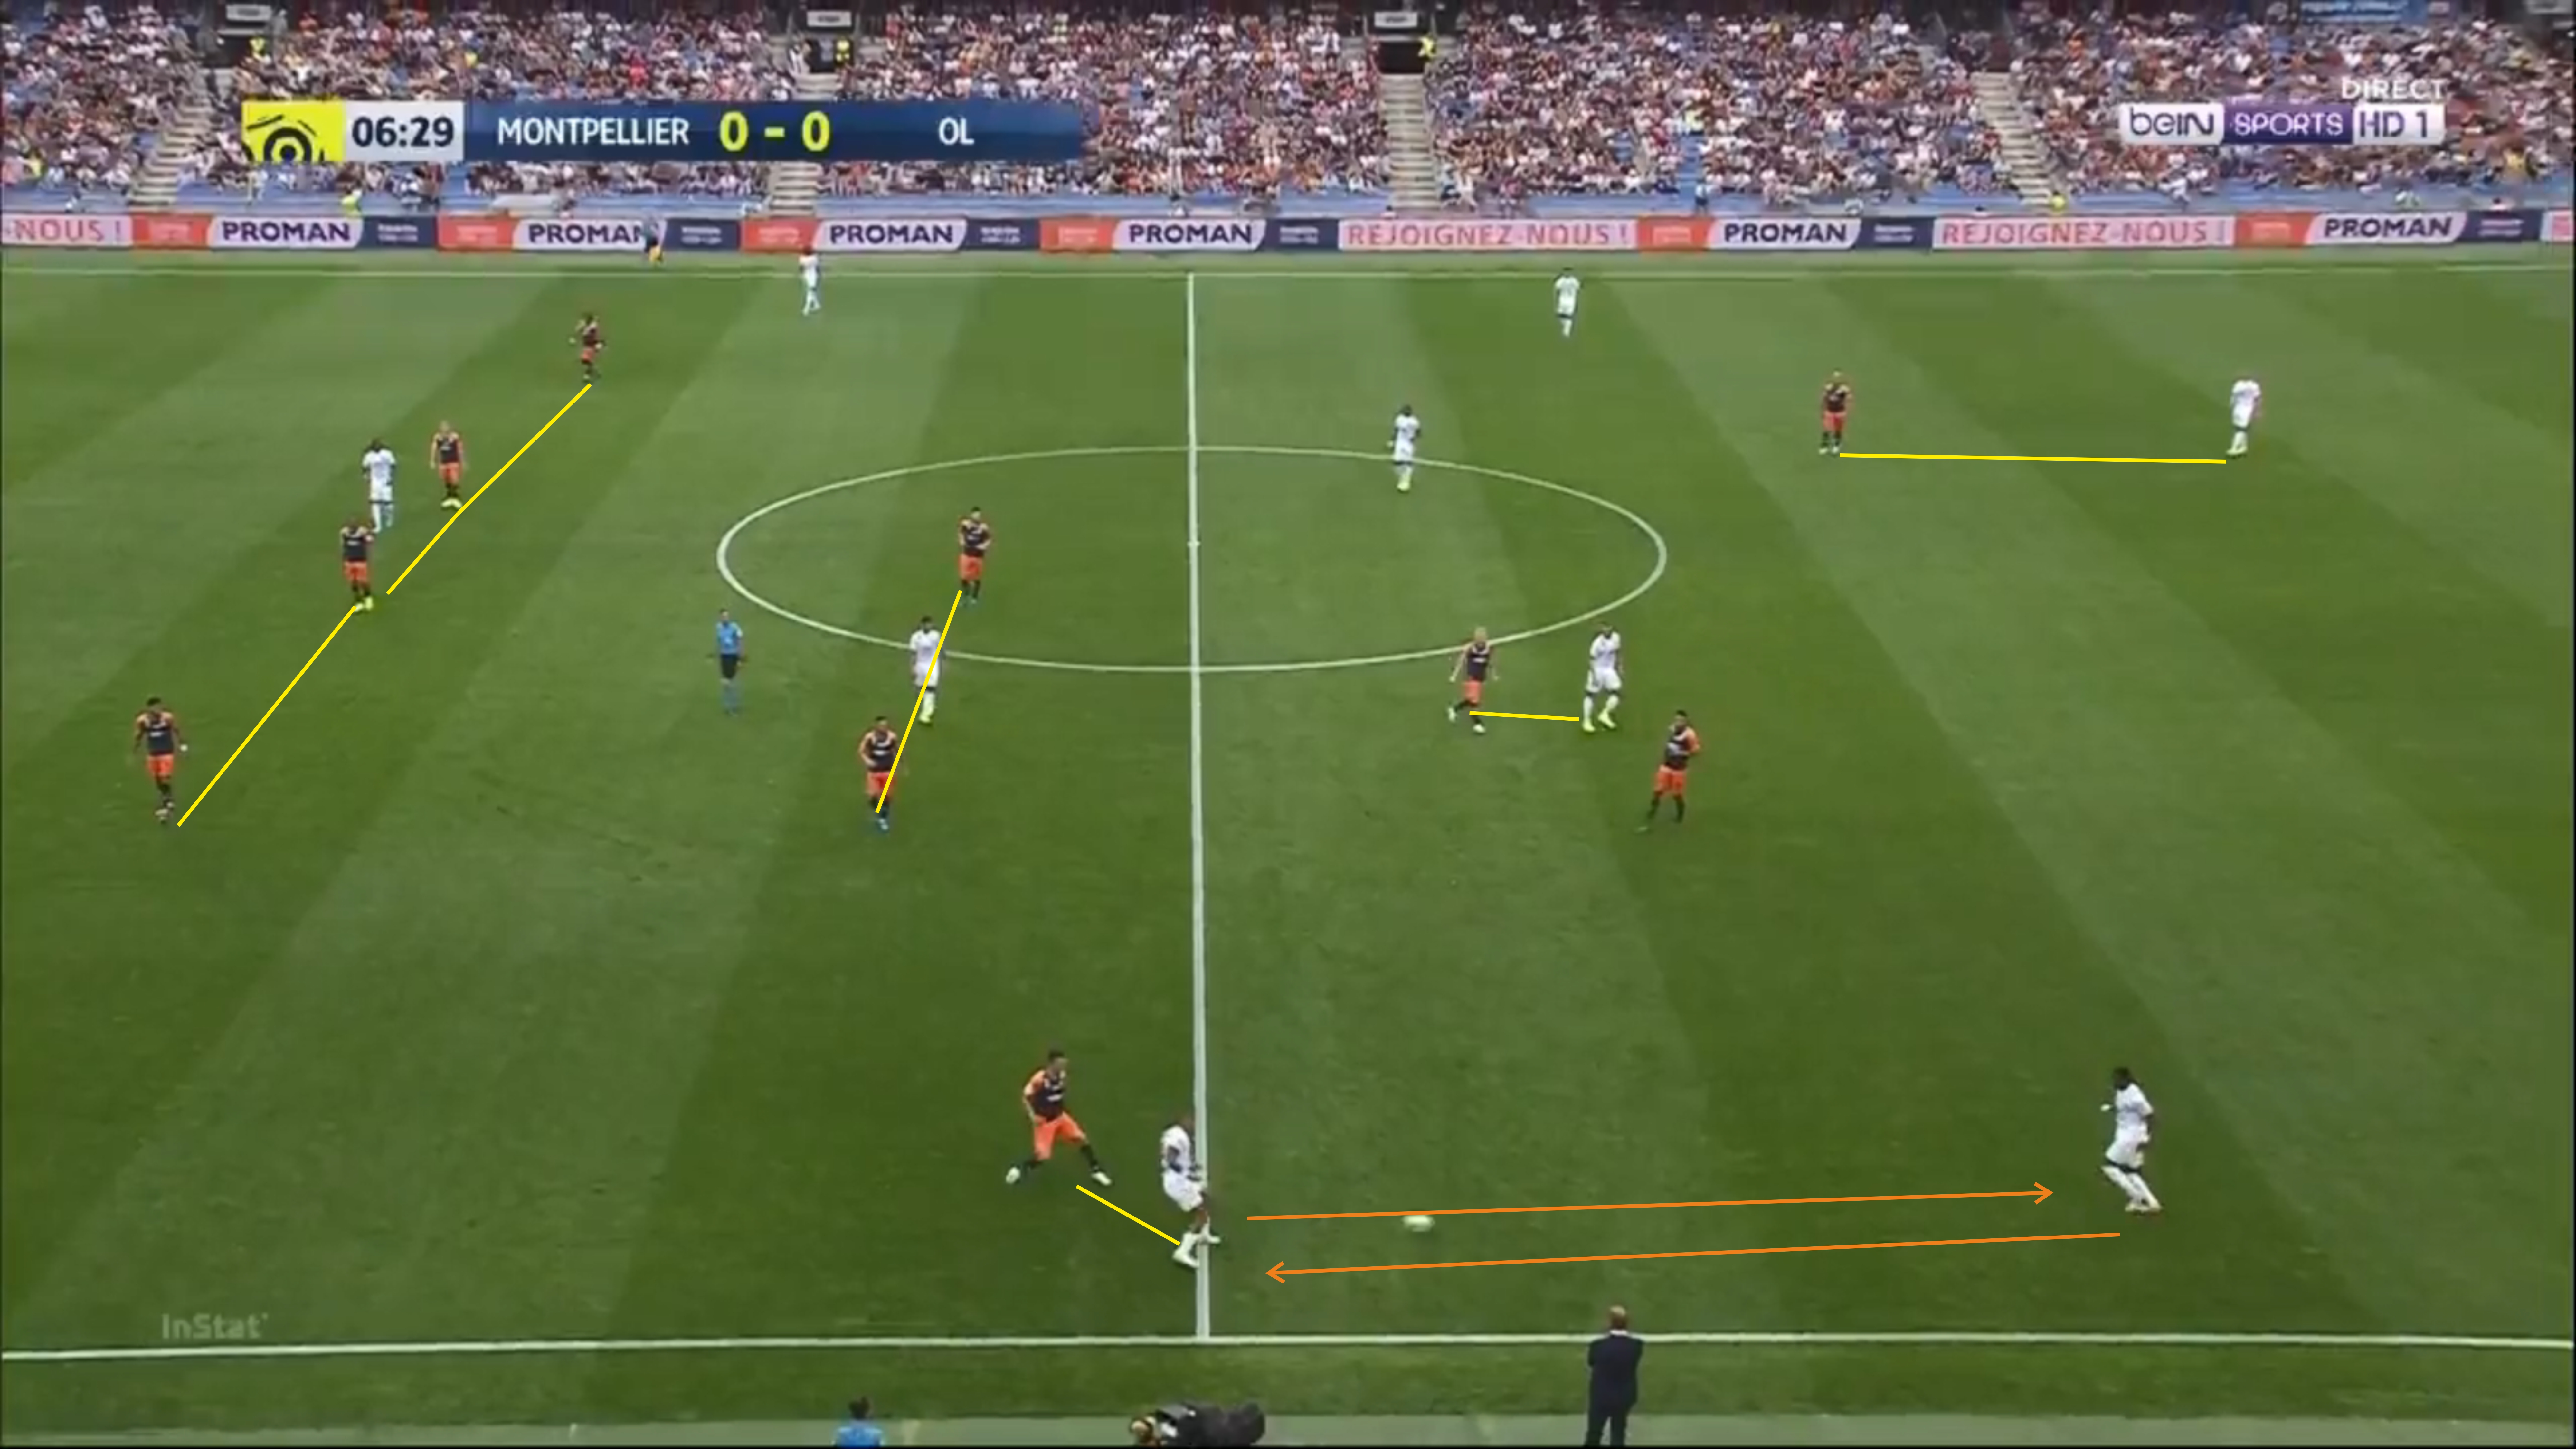 Ligue 1 2019/20: Montpellier vs Lyon - tactical analysis tactics